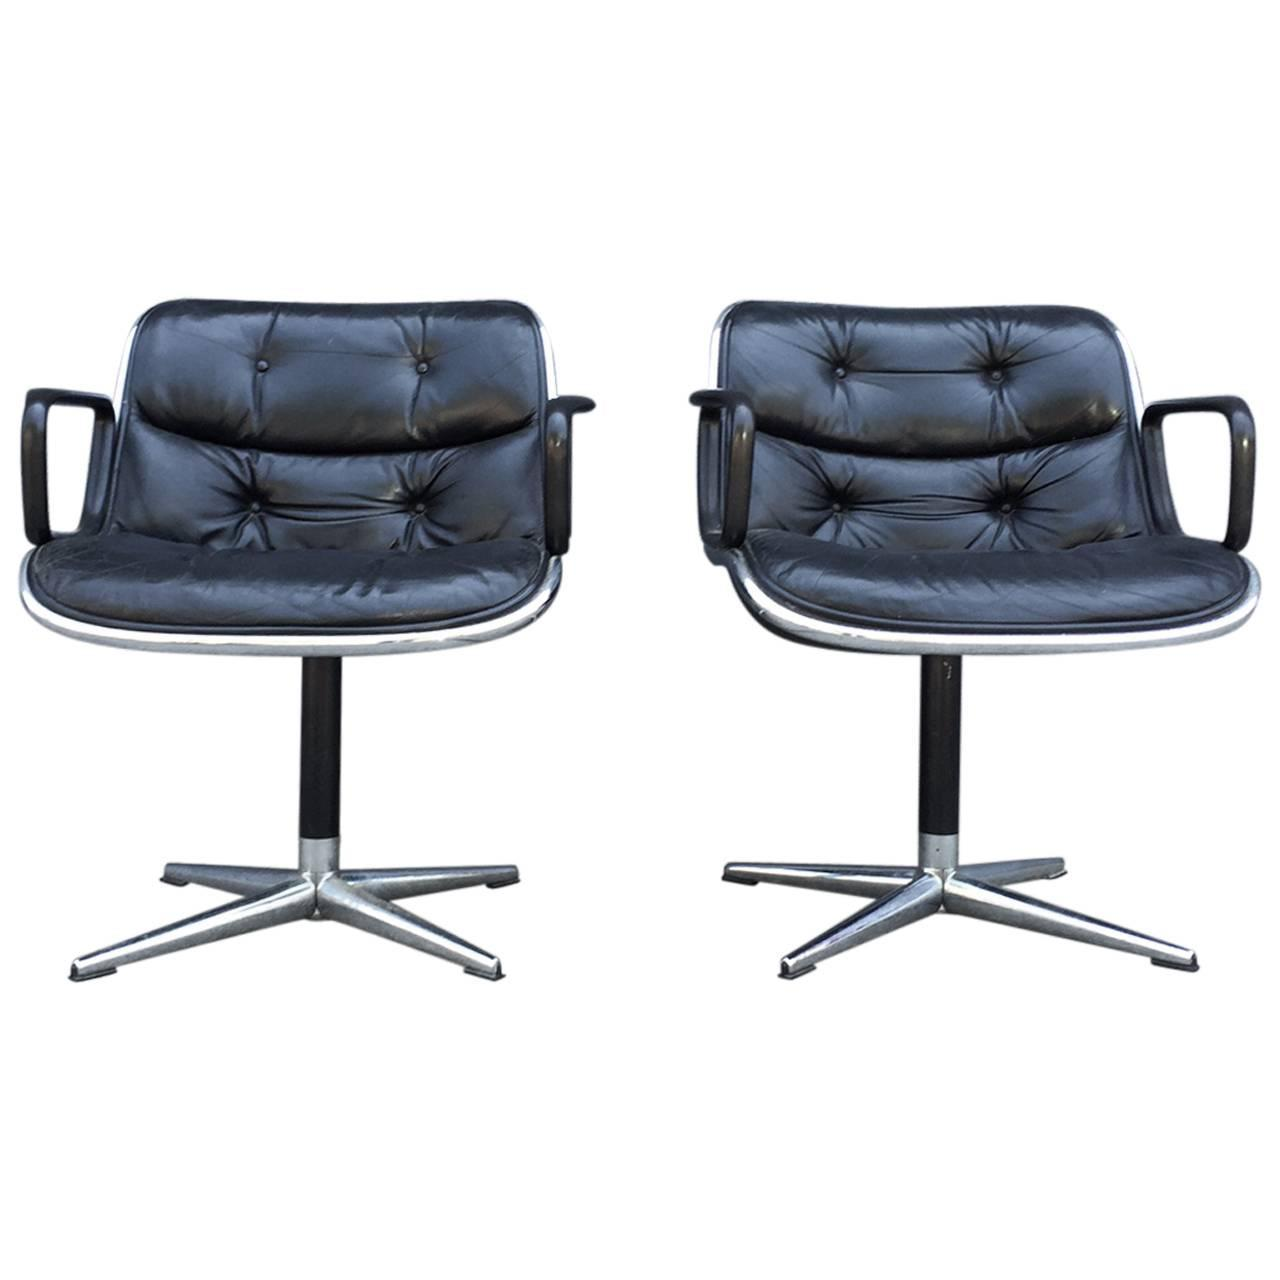 Knoll Pollock Chair Pair Of Early Charles Pollock For Knoll Accent Chairs For